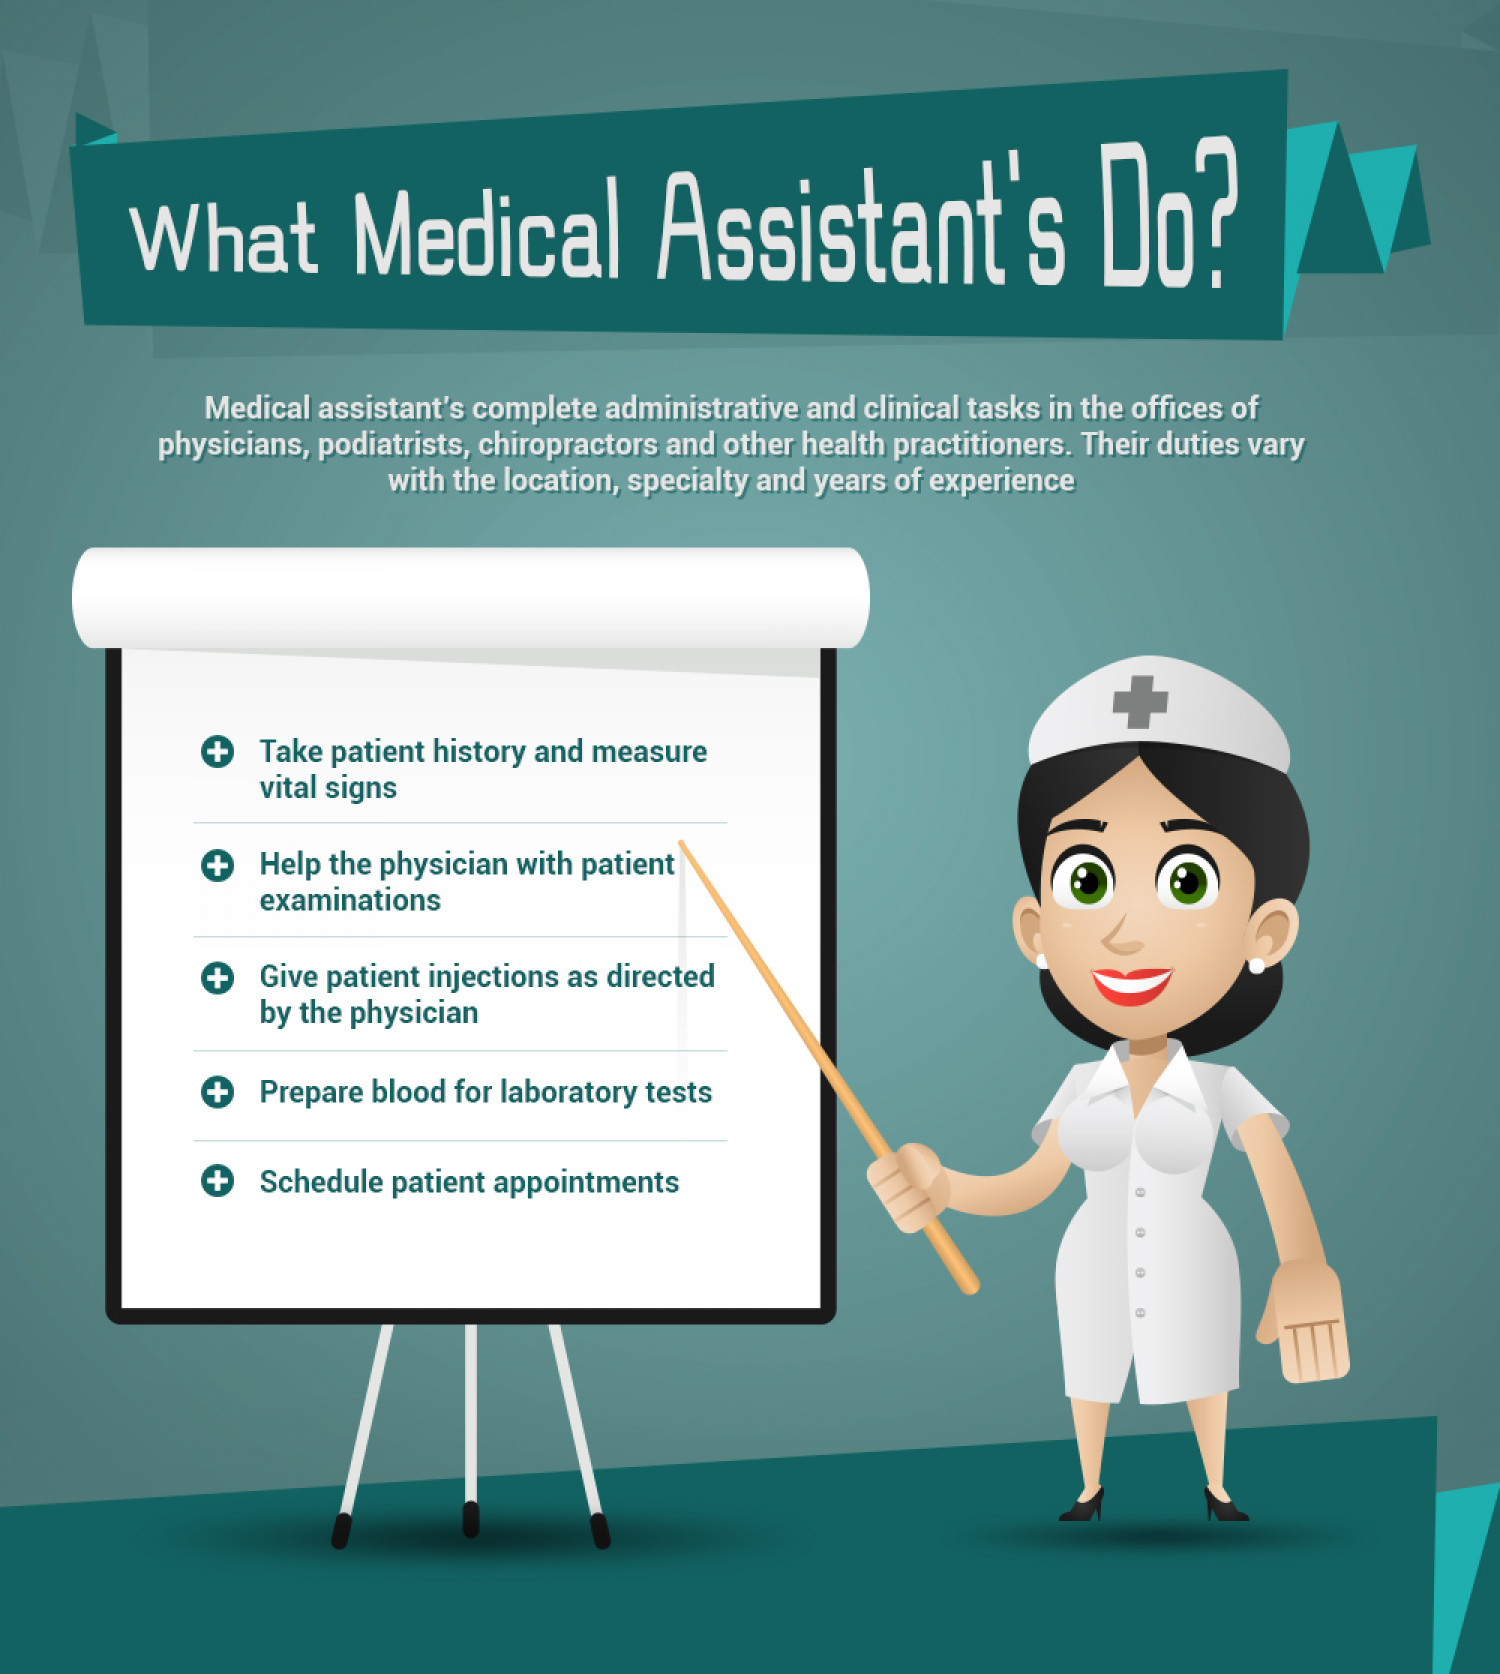 The Medical Assistant's Role Infographic